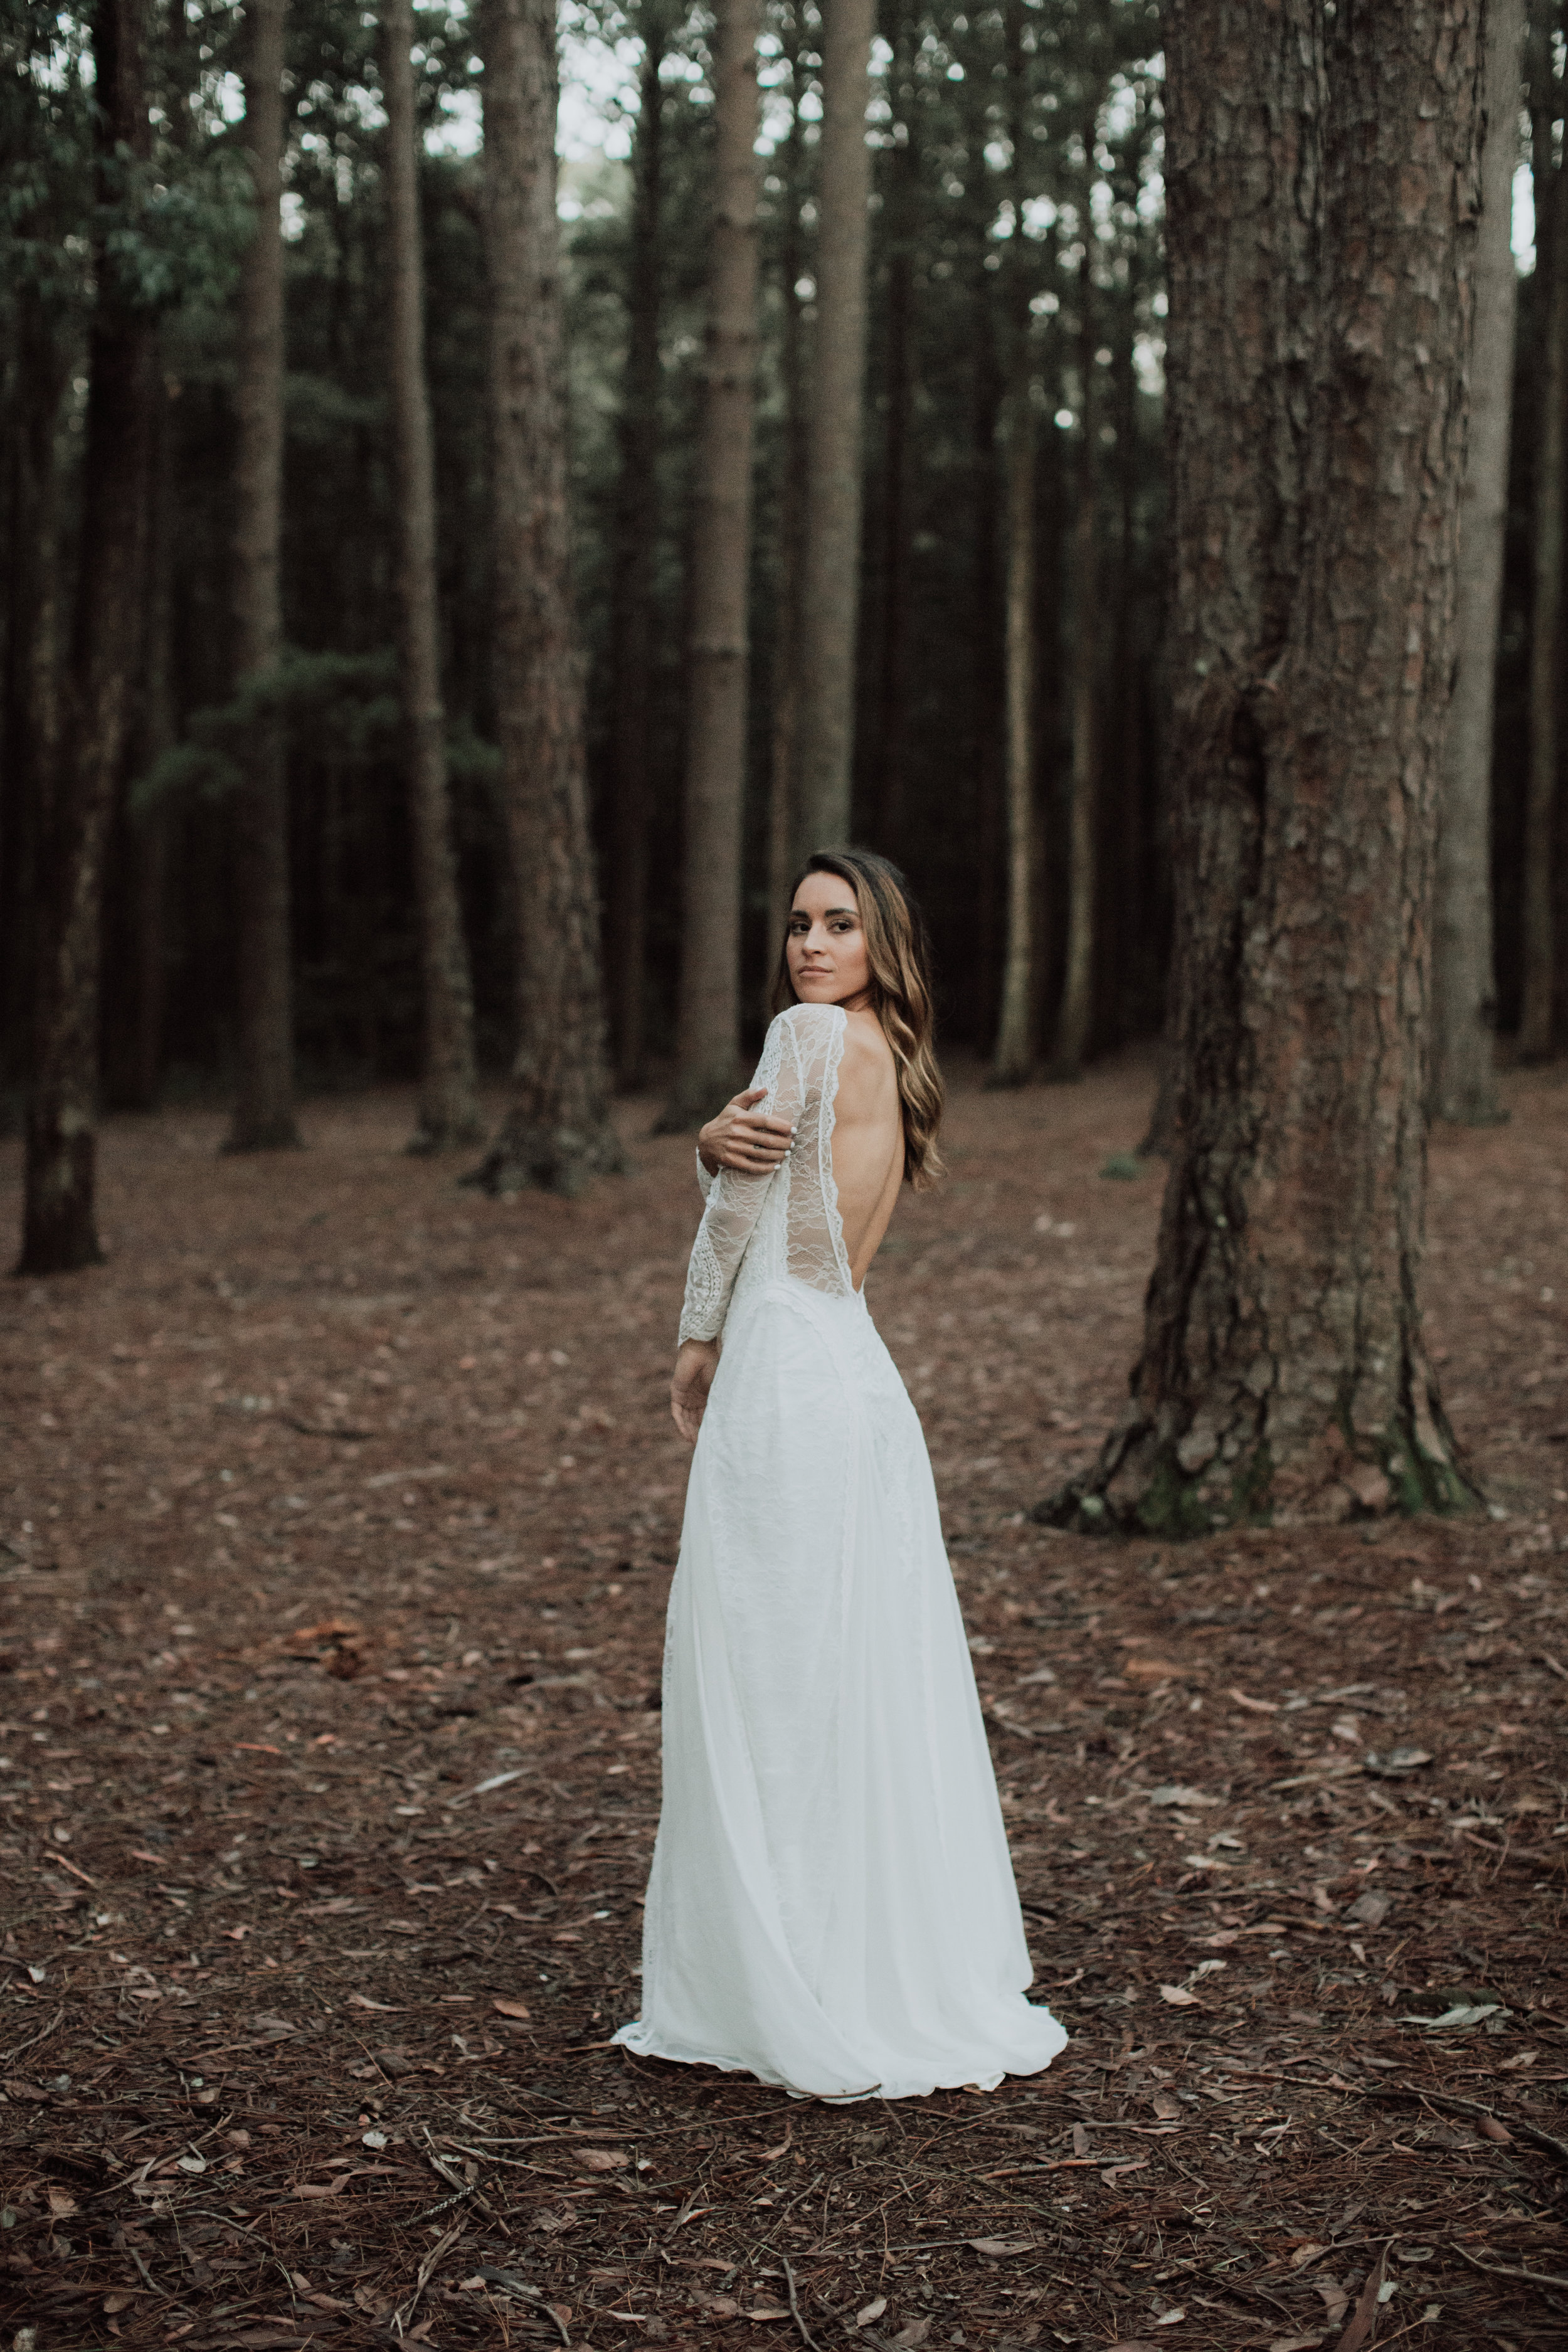 beautiful bride photograph by samuel jacob wedding photographer from newcastle hunter valley australia